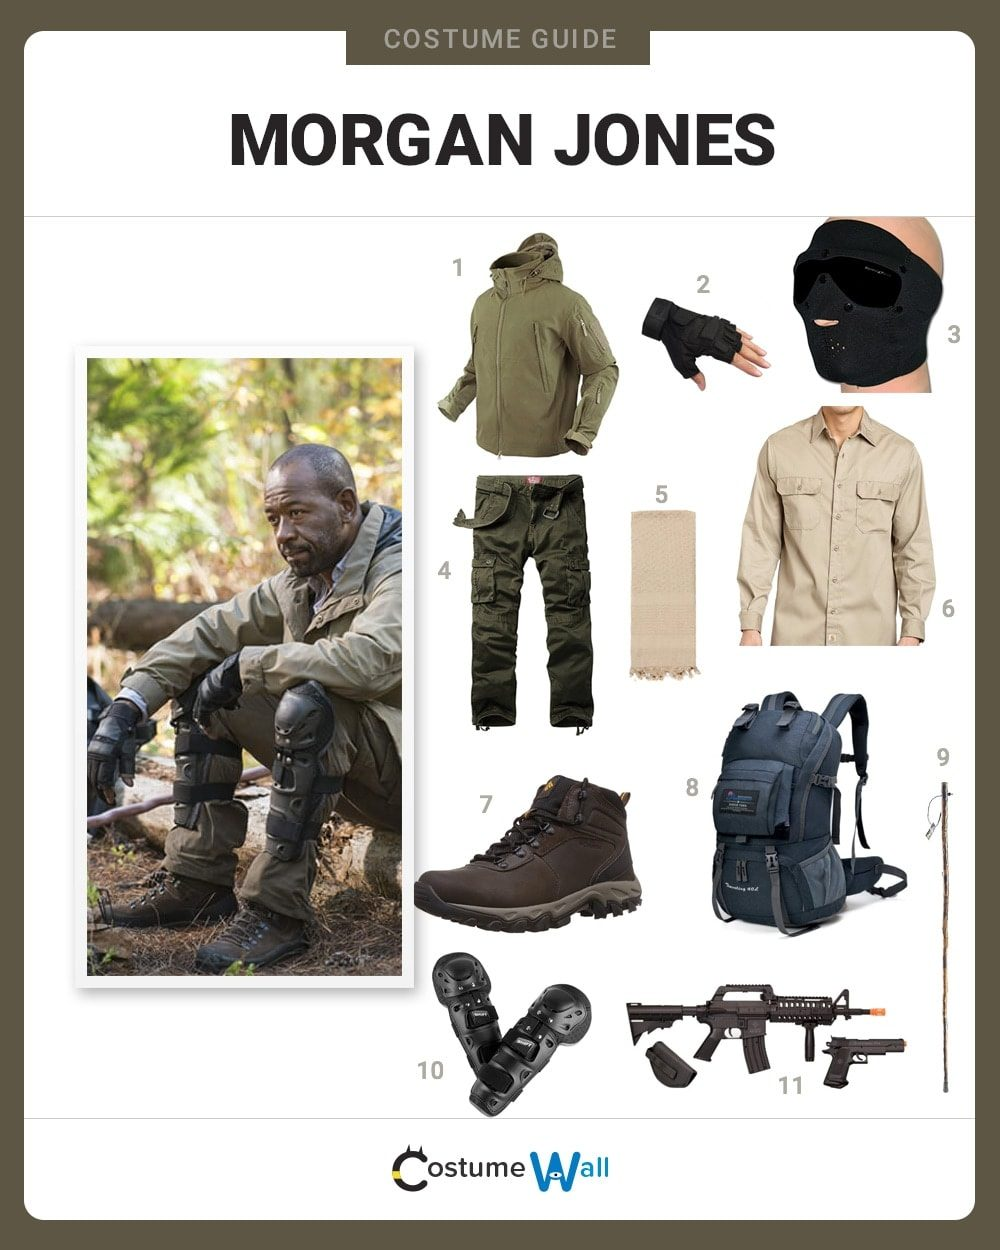 Morgan Jones Costume